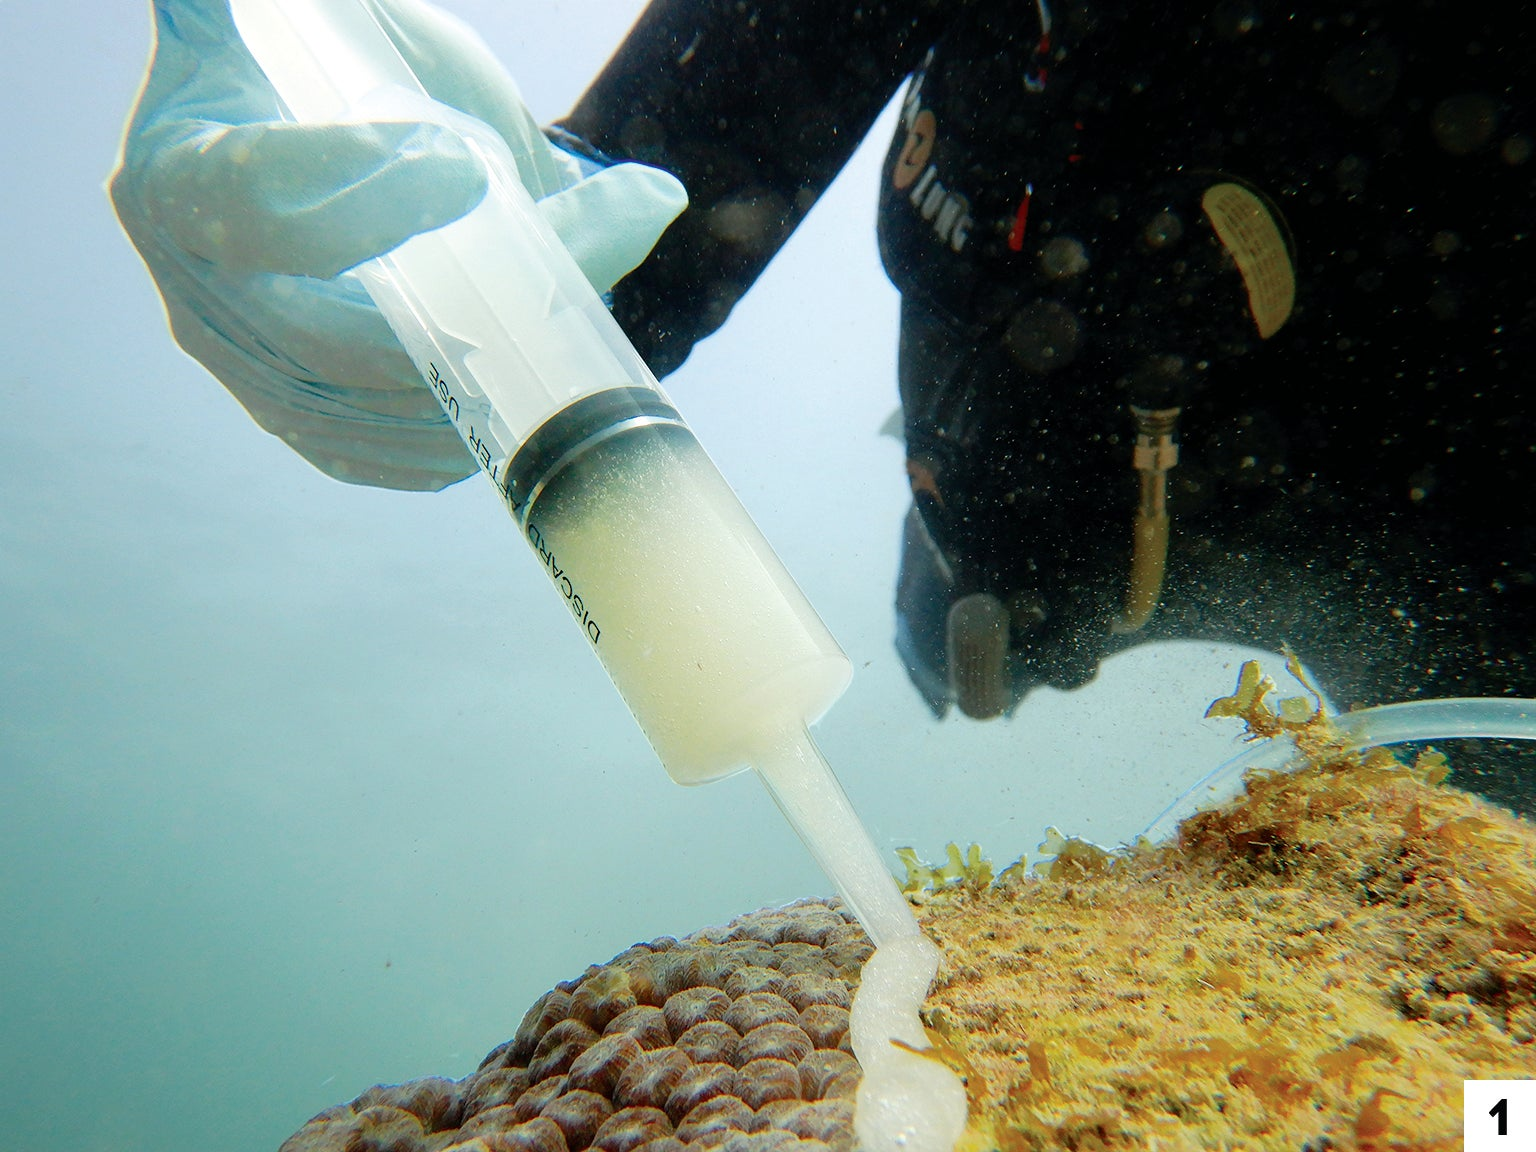 Researcher Kelly Pitts applies a paste laden with a single probiotic onto corals off the Florida coast